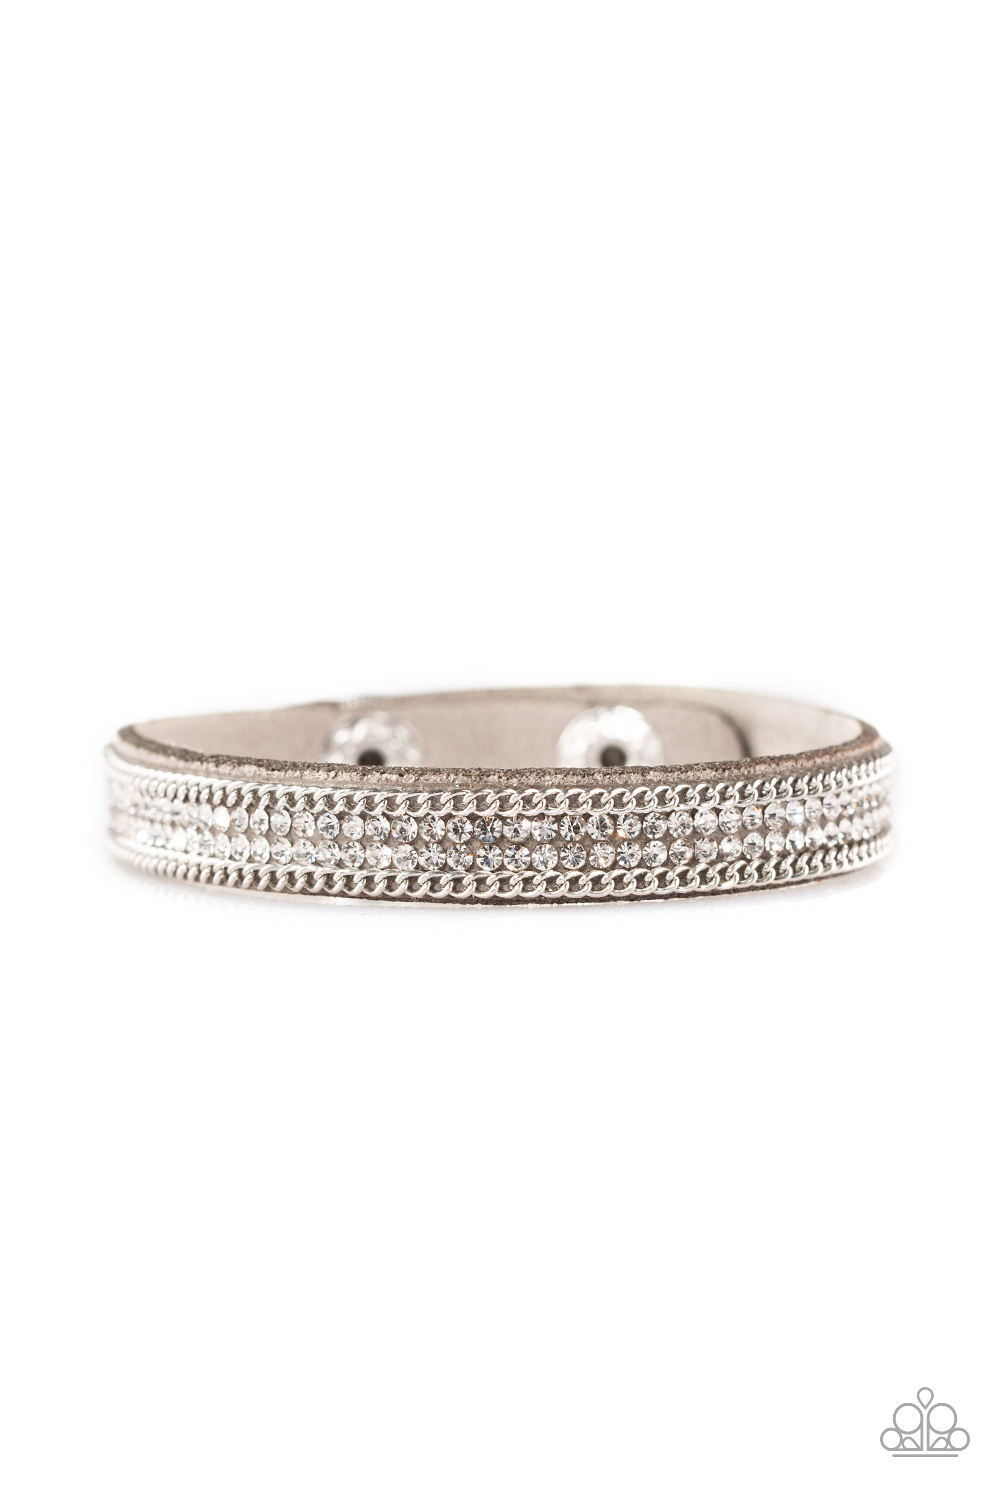 Paparazzi Accessories:  Babe Bling - Silver (1917)